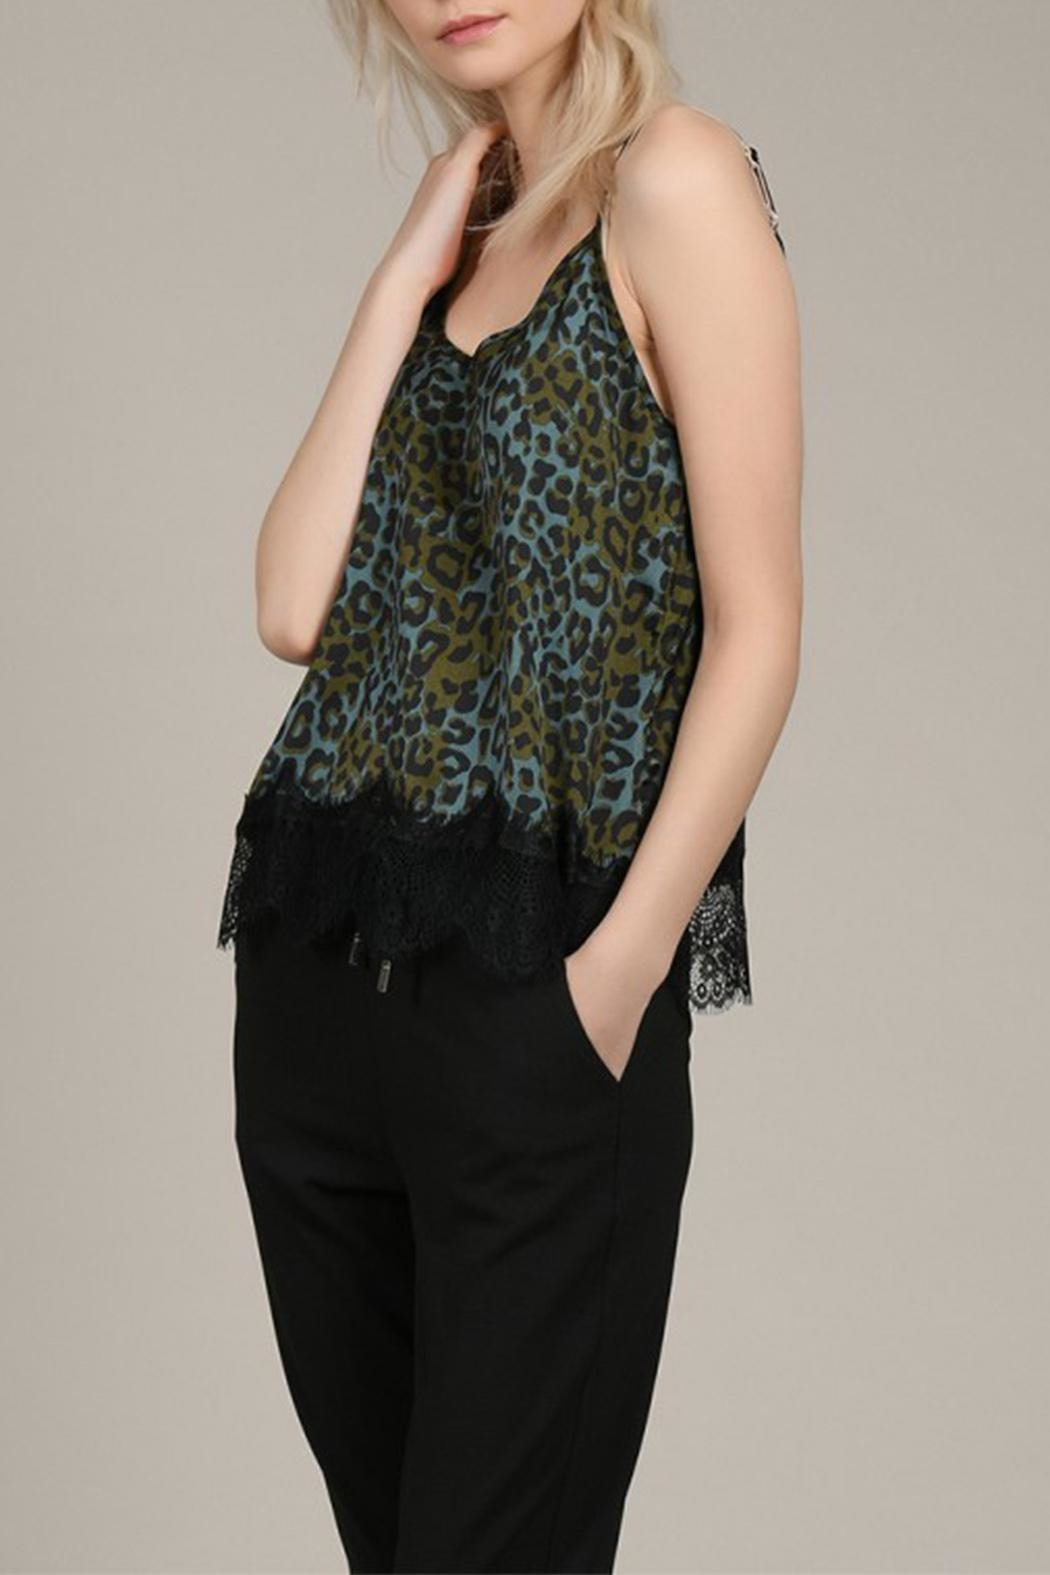 Molly Bracken Leopard Print Camisole - Front Full Image